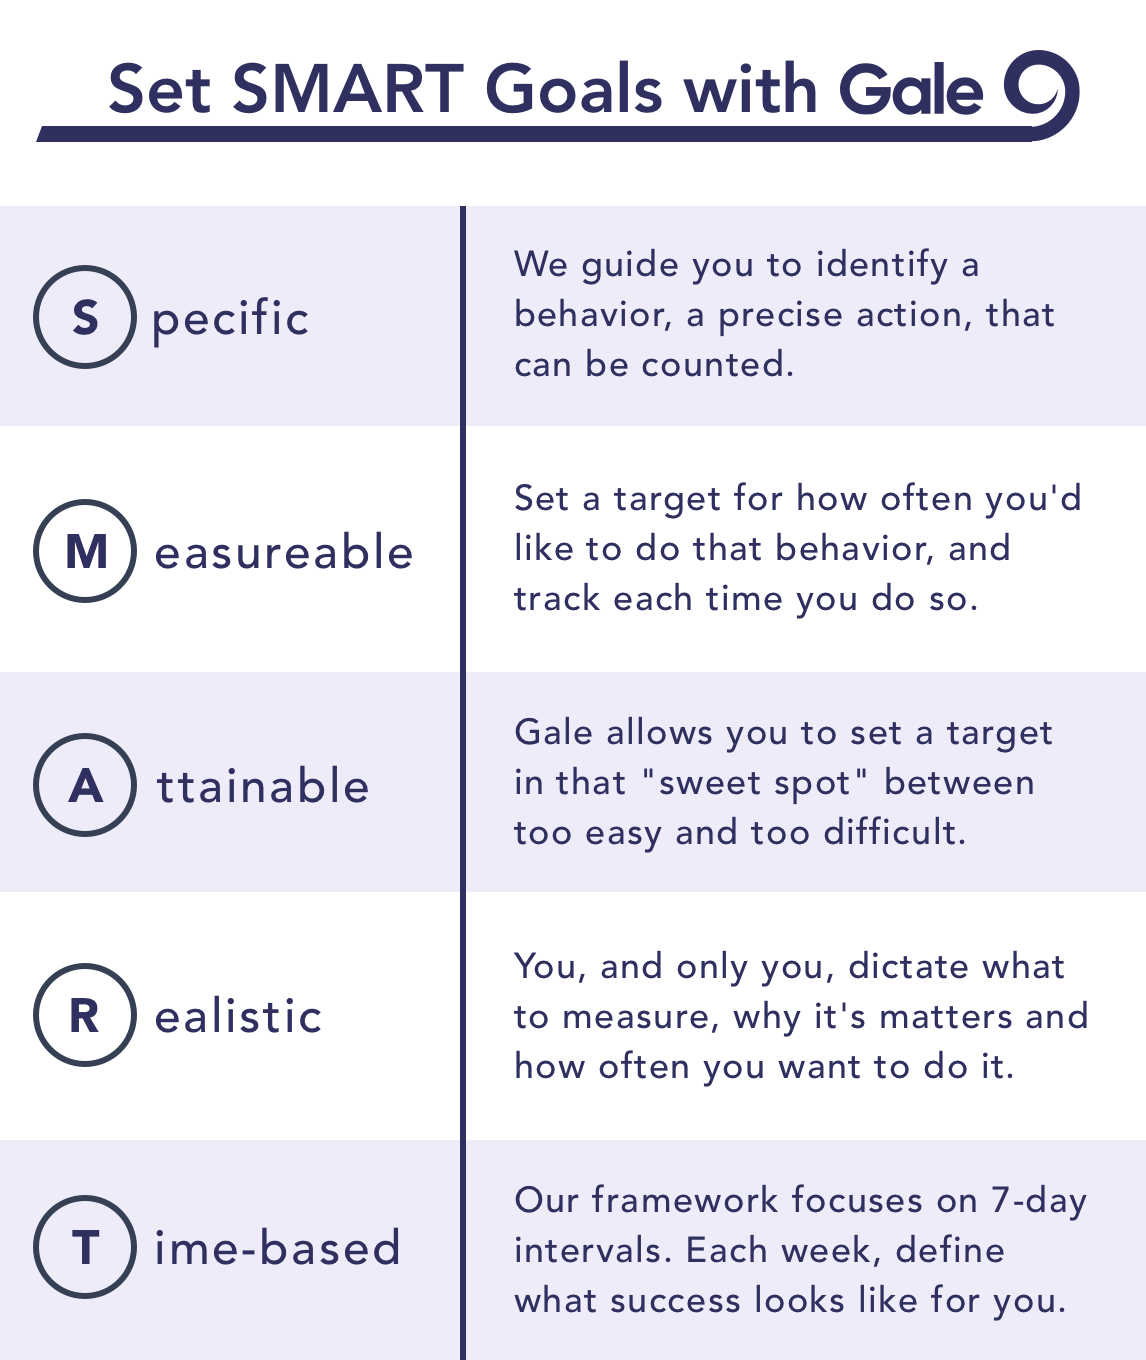 Set SMART Goals with Gale - Specific, Measurable, Attainable, Realistic, Time-based